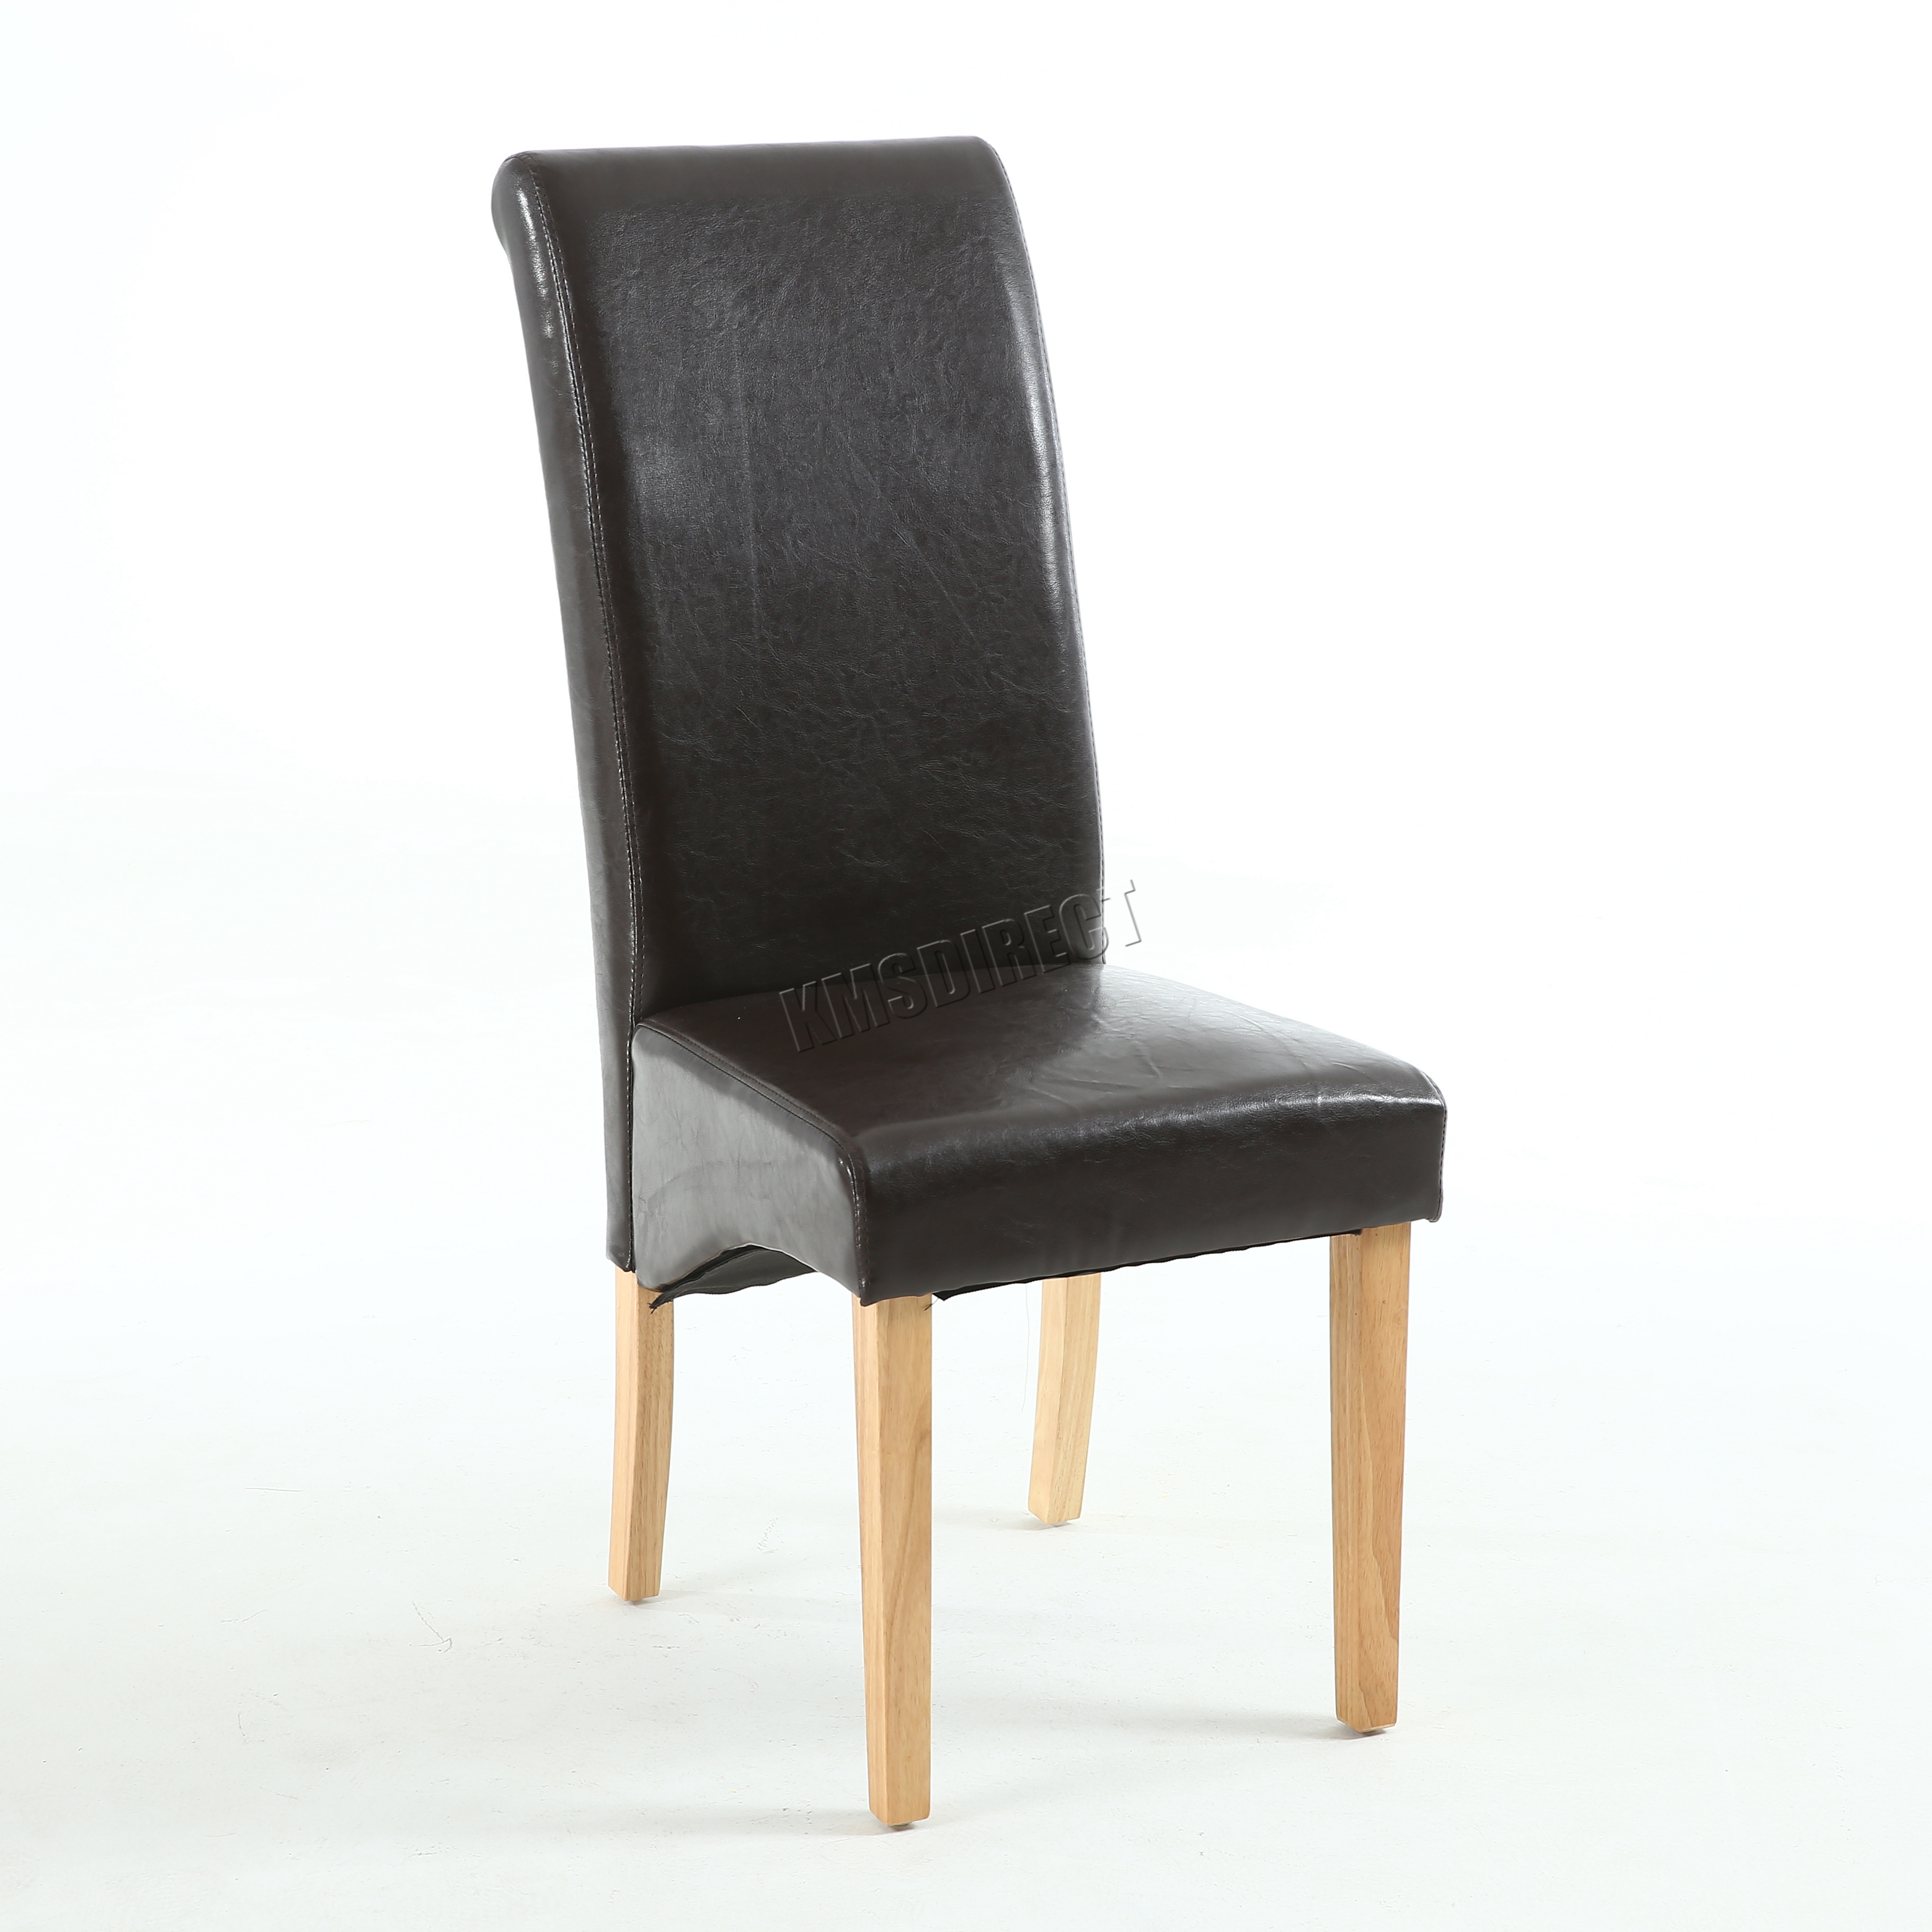 Premium Dining Chairs Faux Leather Roll Top Scroll High Back Wood Furniture S